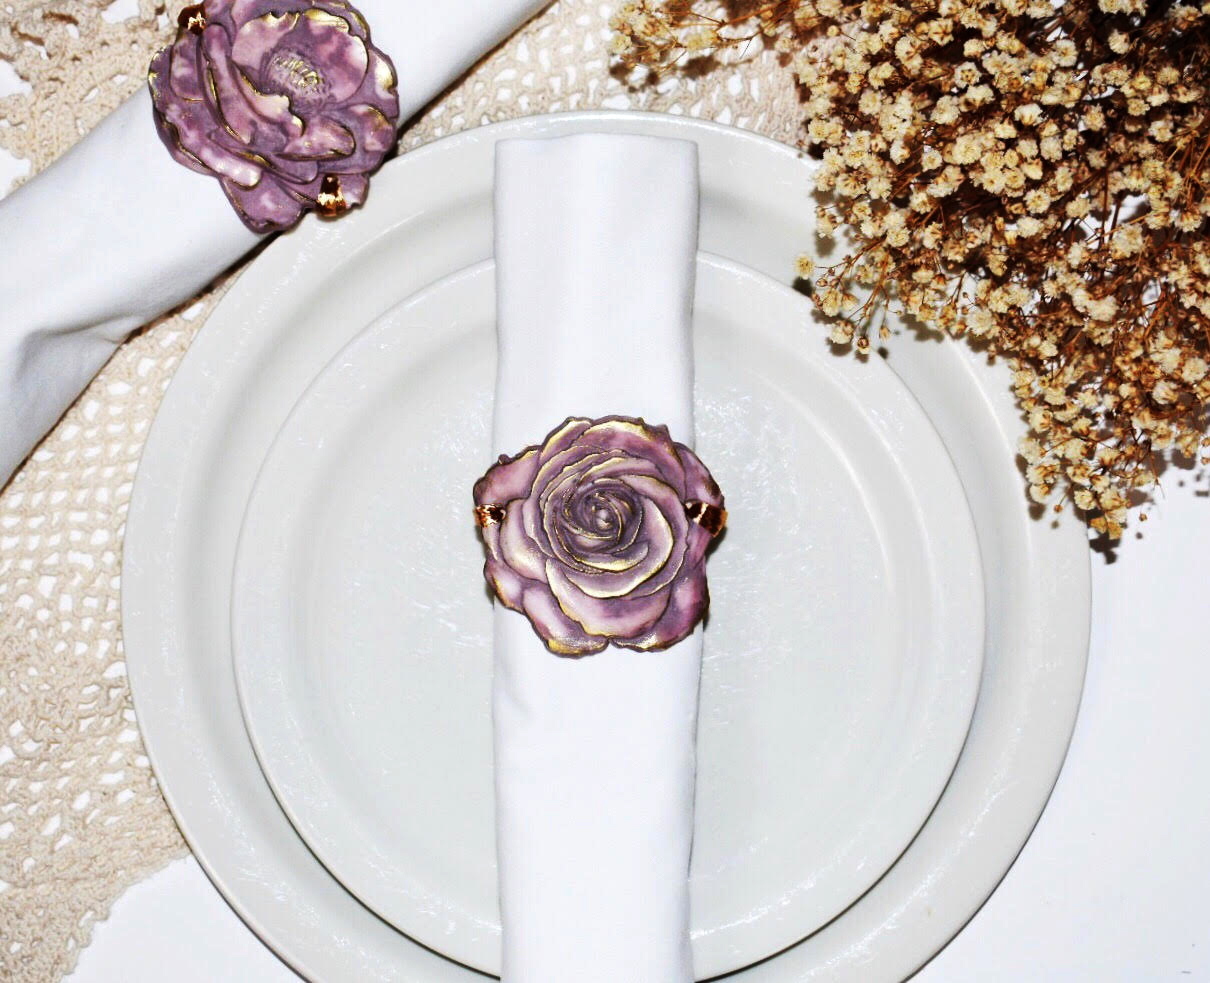 Today, have a fun video we created showing how to use the Decor Moulds with our Paper Clay on these custom Wood Chargers for our holiday table setting. You wont believe how easy it is to create such a high end look using our DIY collection.